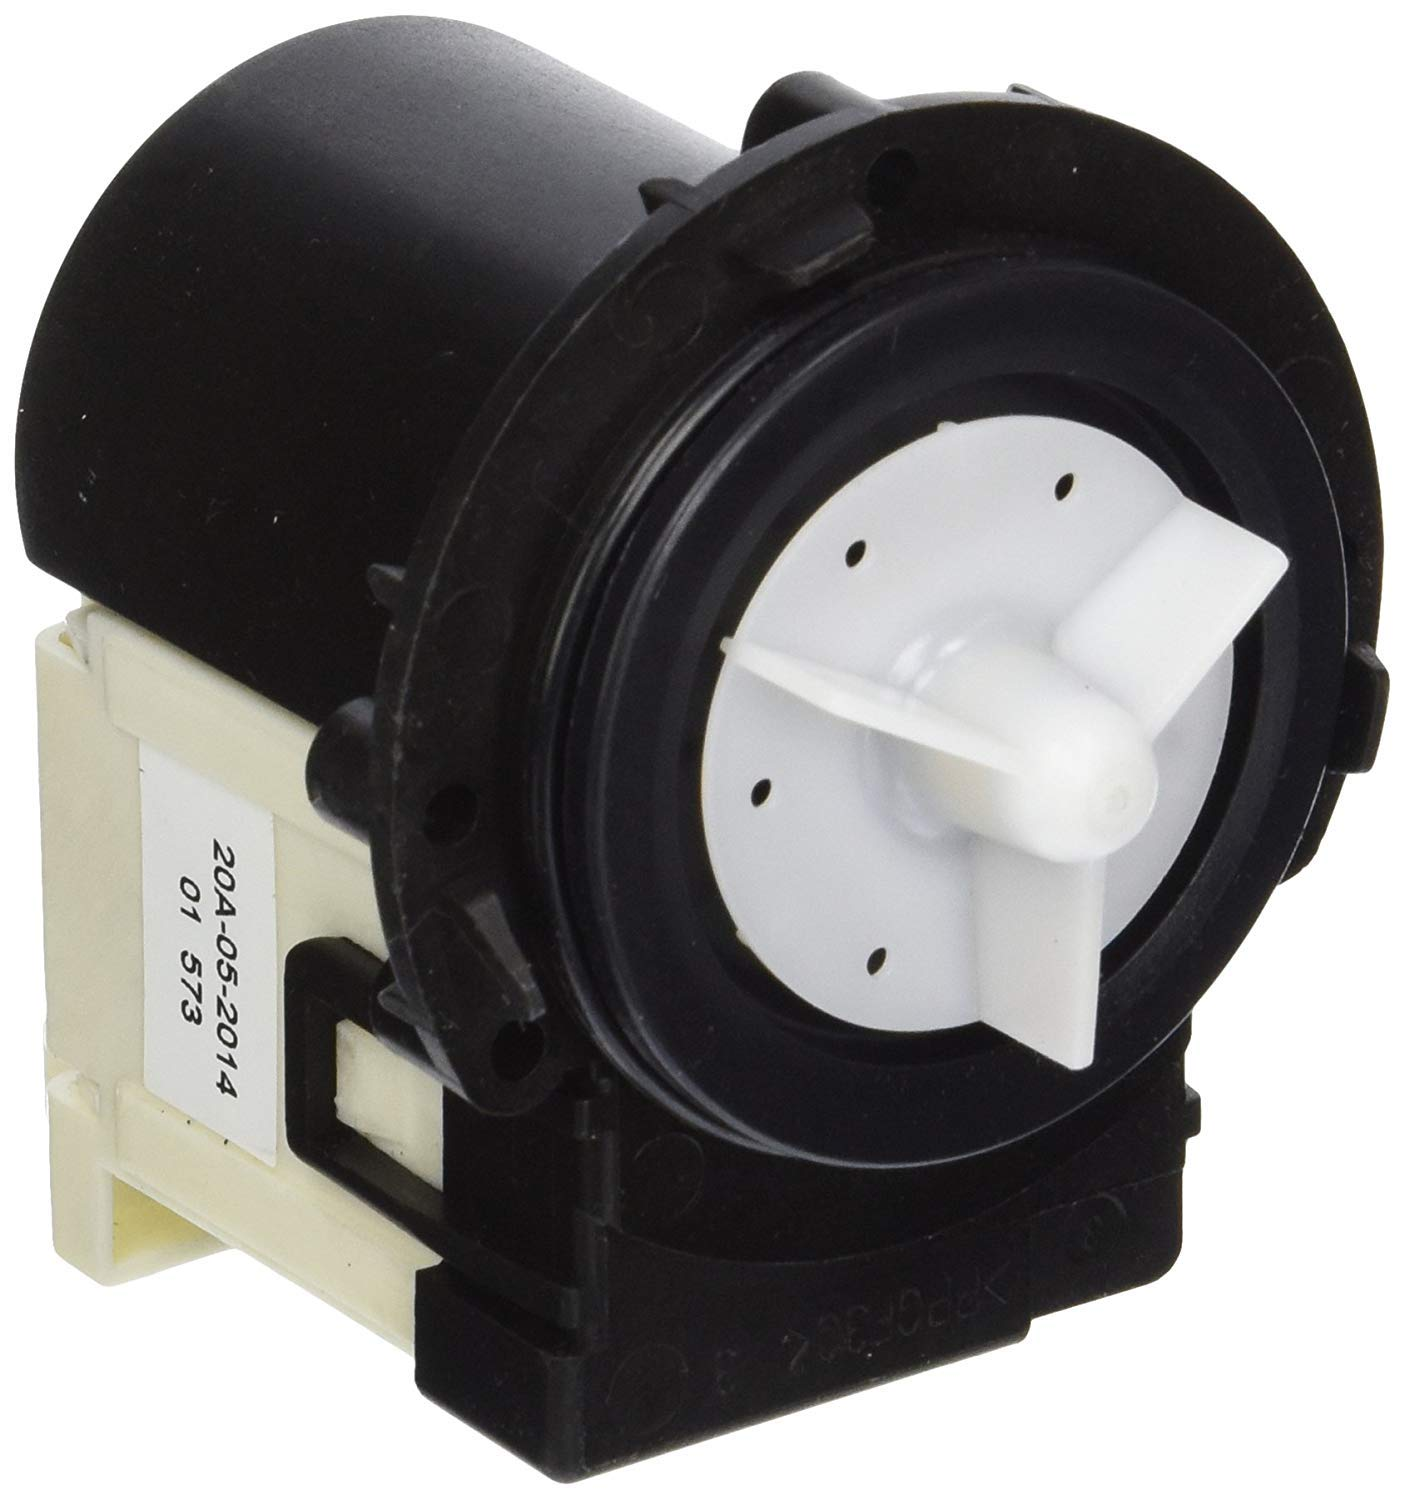 Washer Water Drain Pump that works with LG WM2301HR